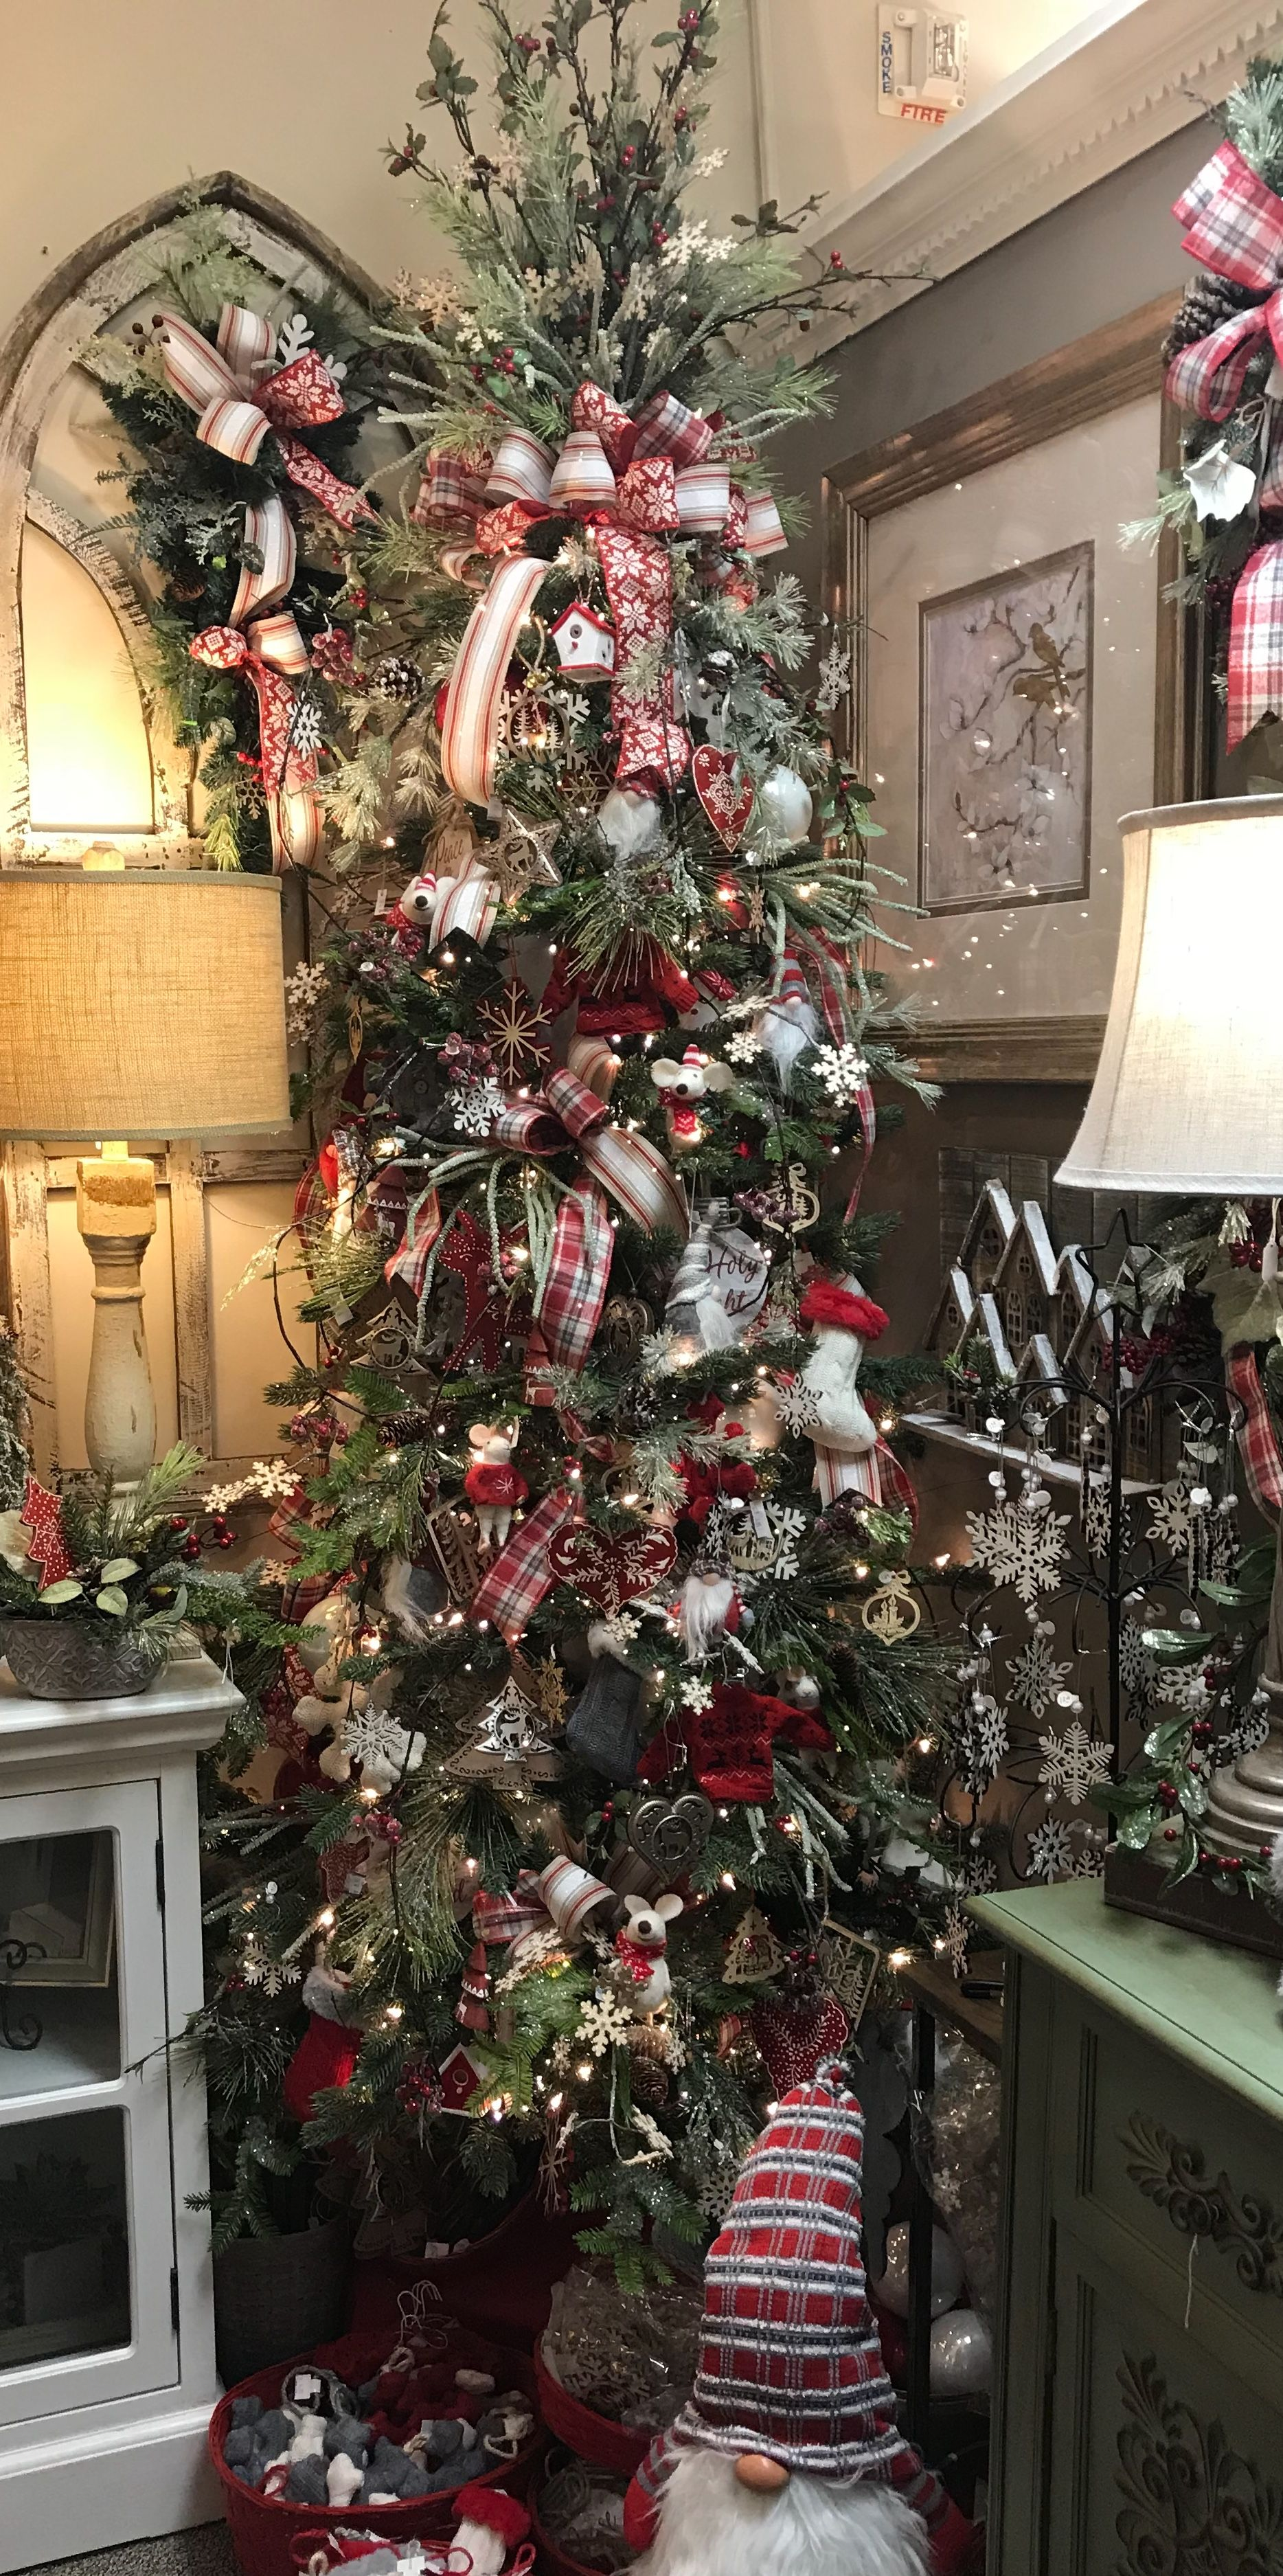 Pin By Oceanic House On Christmas Trees Holiday Tree Country Christmas Holiday Decor